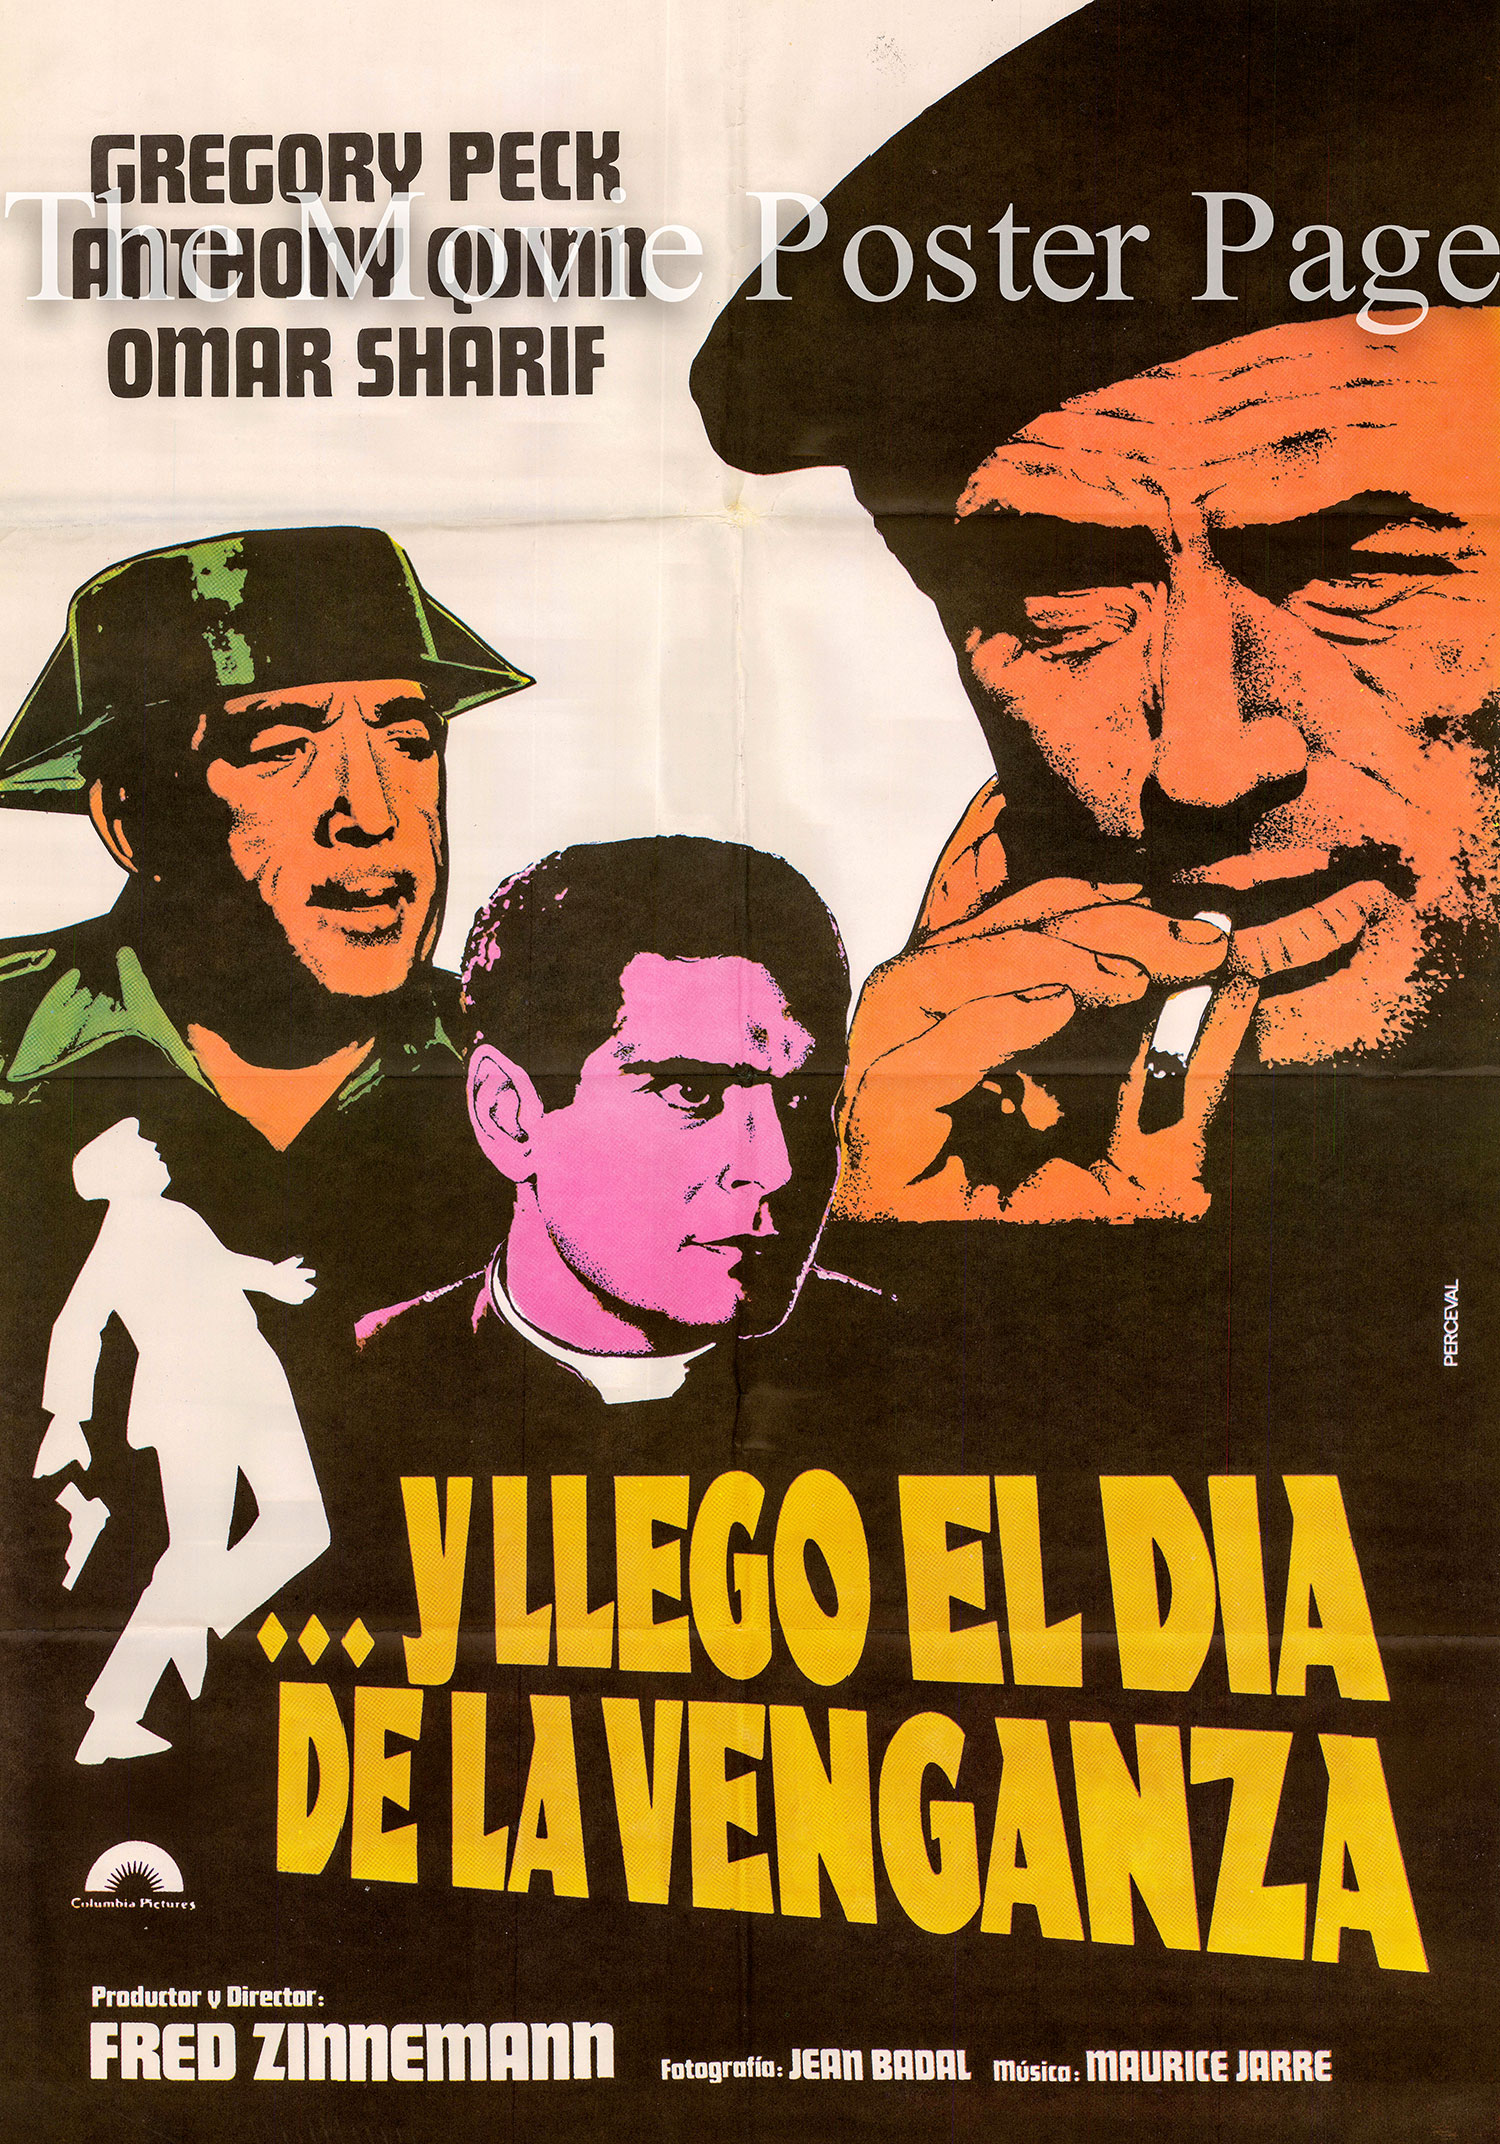 Pictured is a Spanish one-sheet poster for an undated rerelease of the 1964 Fred Zinneman film Behold a Pale Horse starring Gregory Peck.